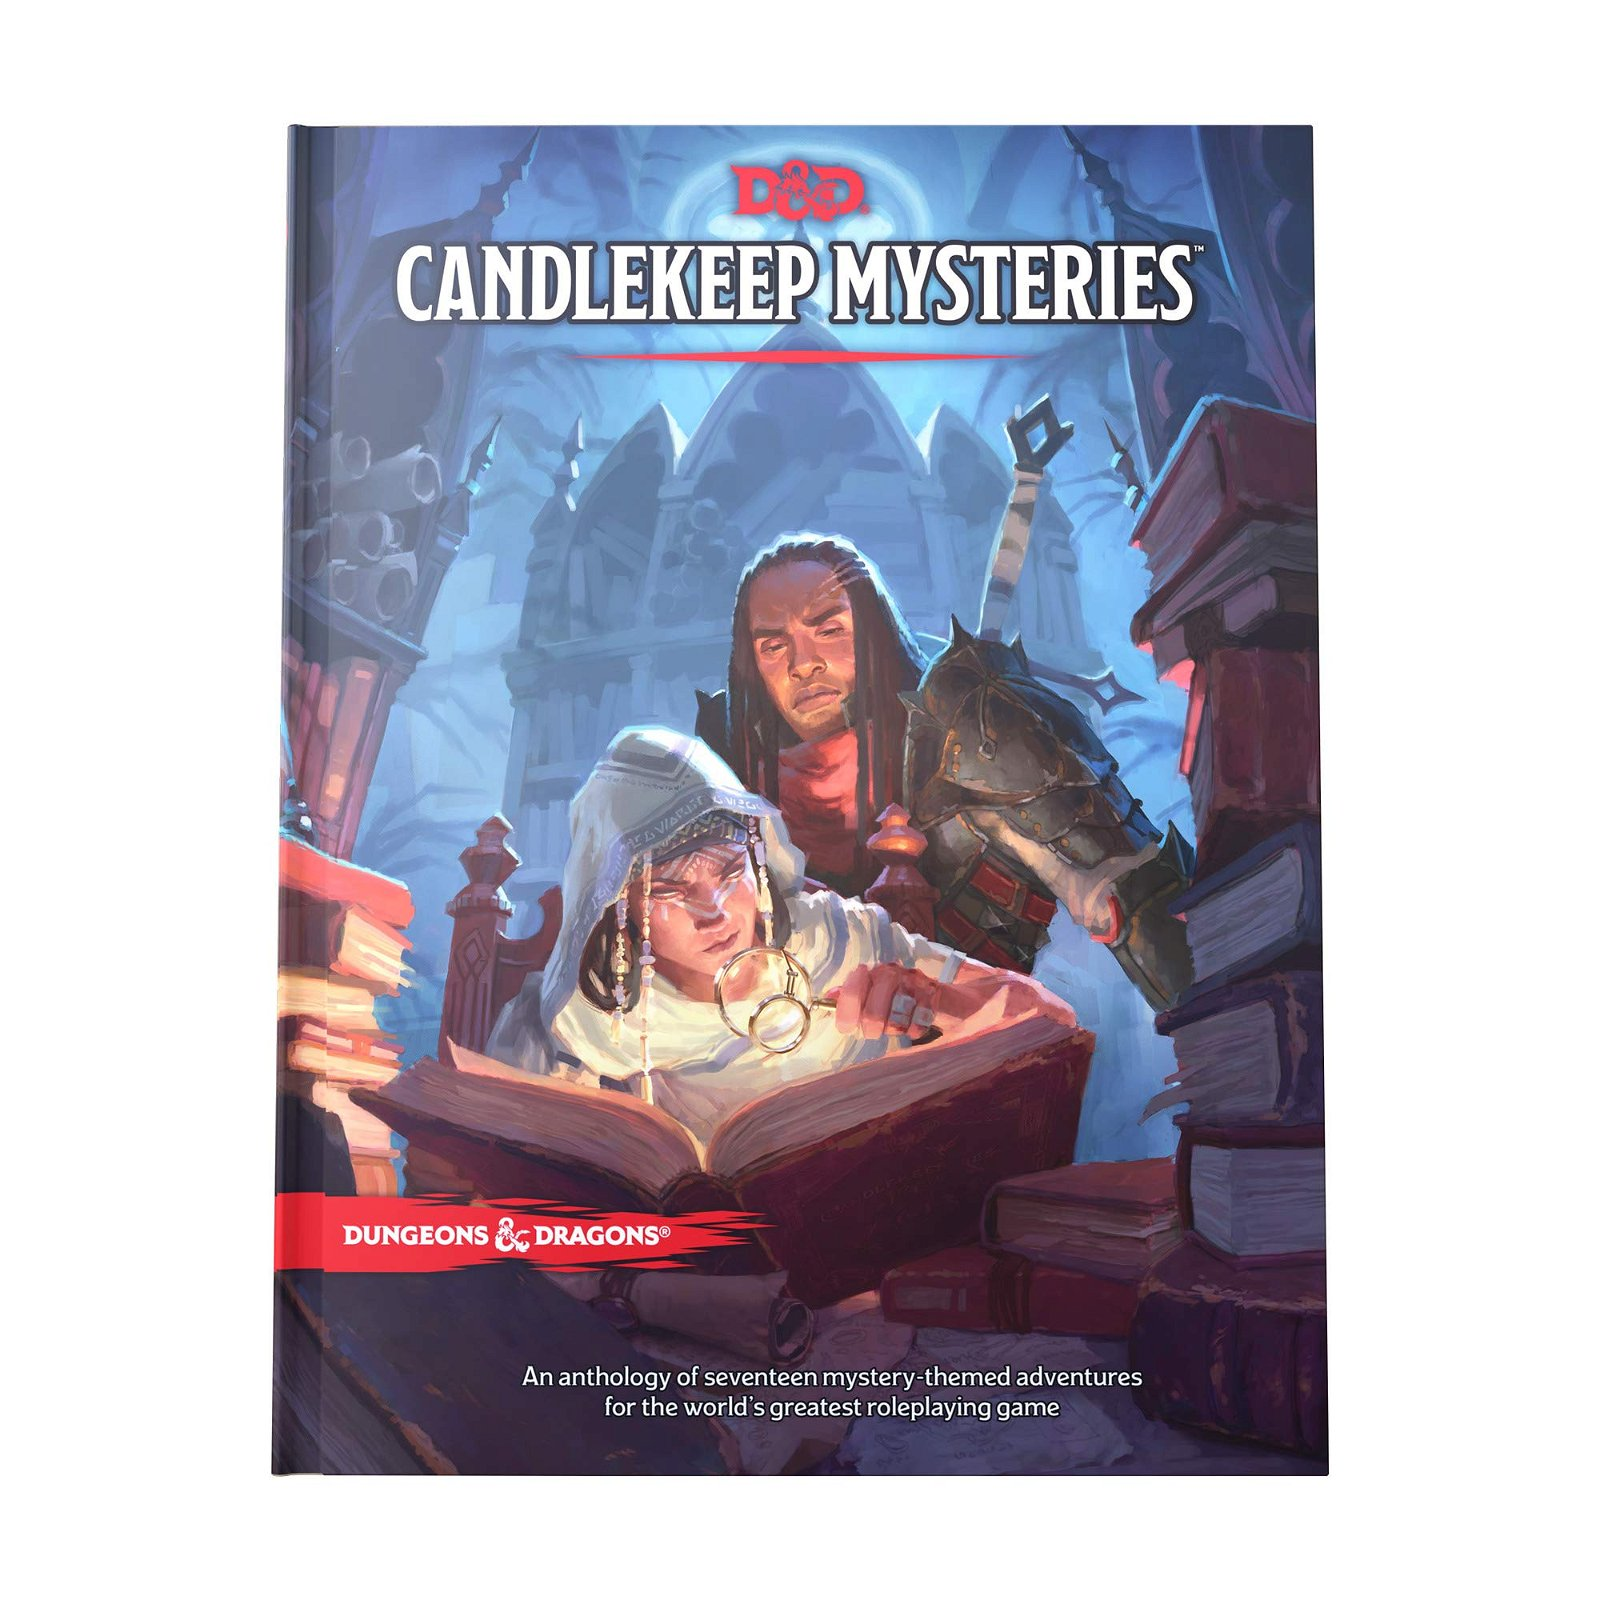 Candlekeep Mysteries (Dungeons & Dragons)